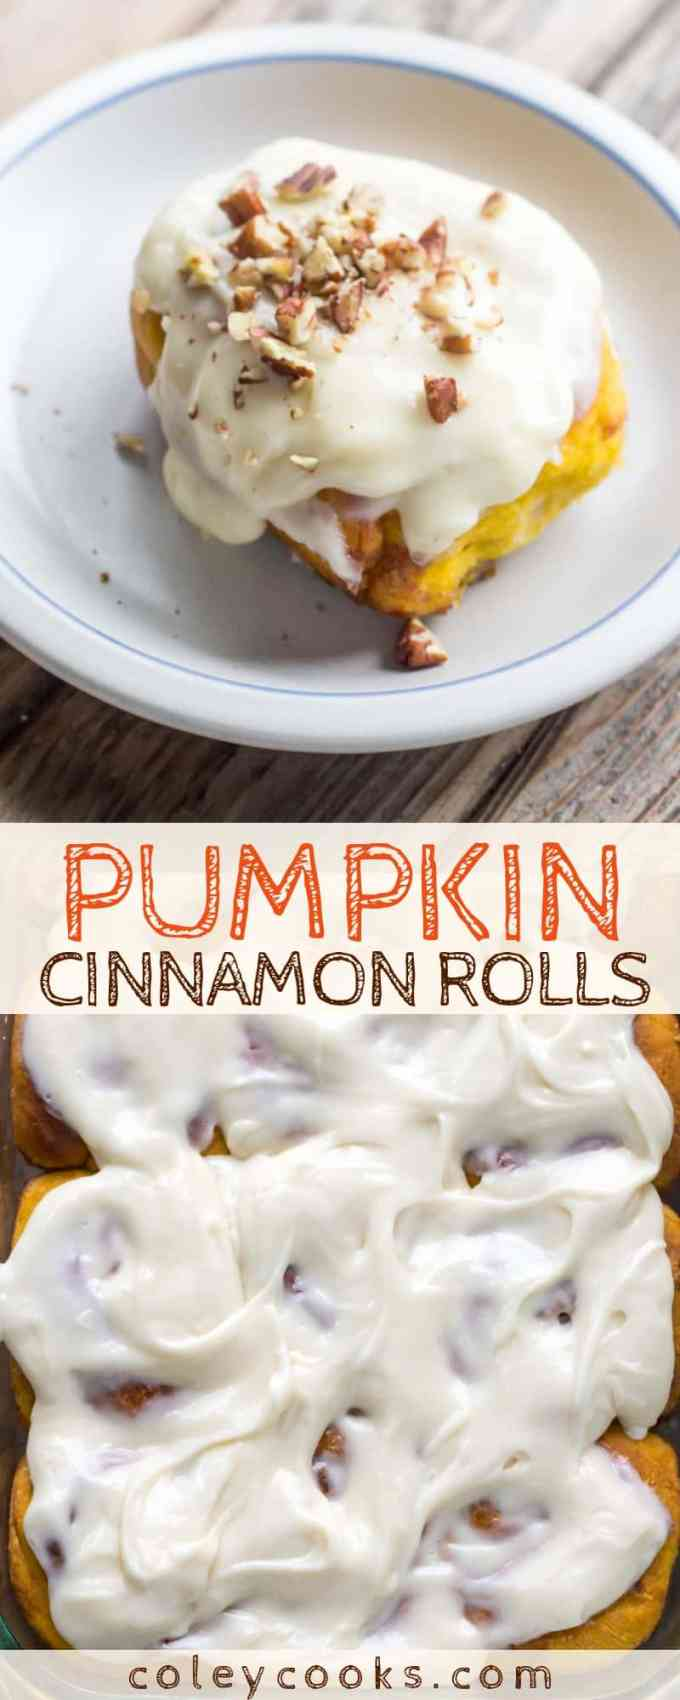 PUMPKIN CINNAMON ROLLS | Insanely delicious pumpkin cinnamon bun recipe with cream cheese frosting perfect for fall and Thanksgiving! #thanksgiving #pumpkin #cinnamon #rolls #buns #cinnabon #recipe #pecan #creamcheesefrosting | ColeyCooks.com